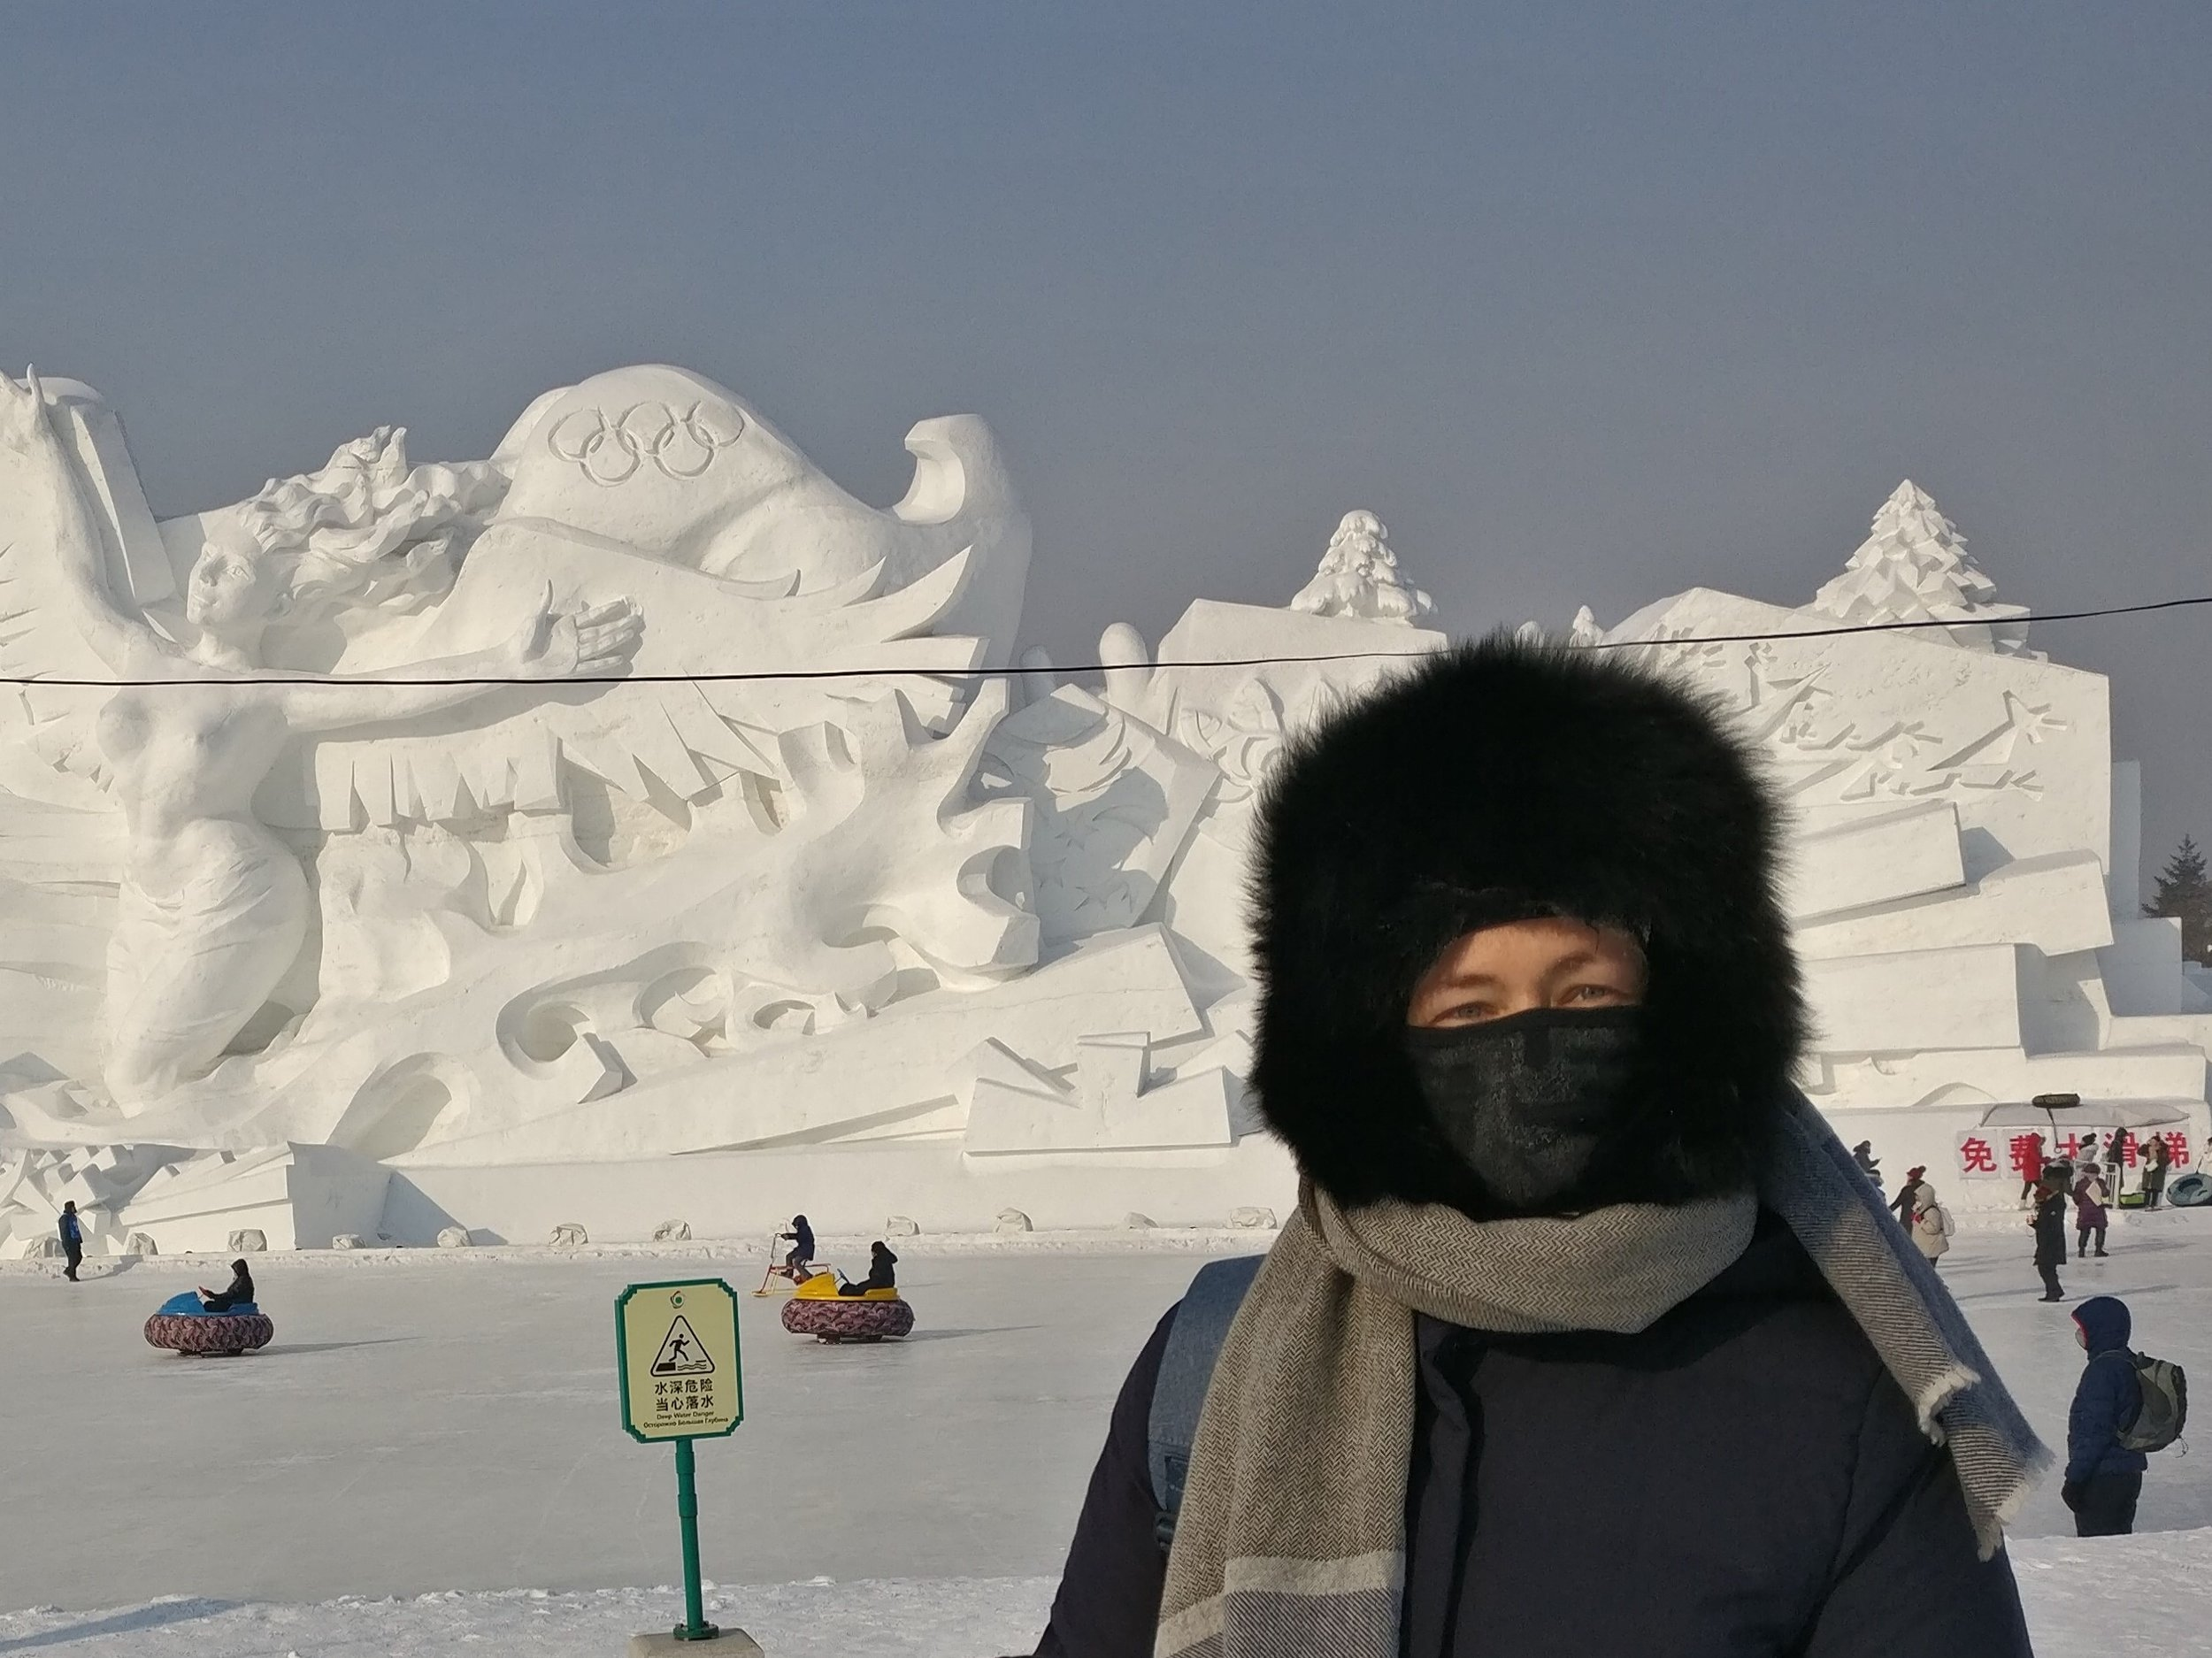 Kirsty at the Harbin ice festival in winter, when temperatures drop to -30 degrees Celsius.